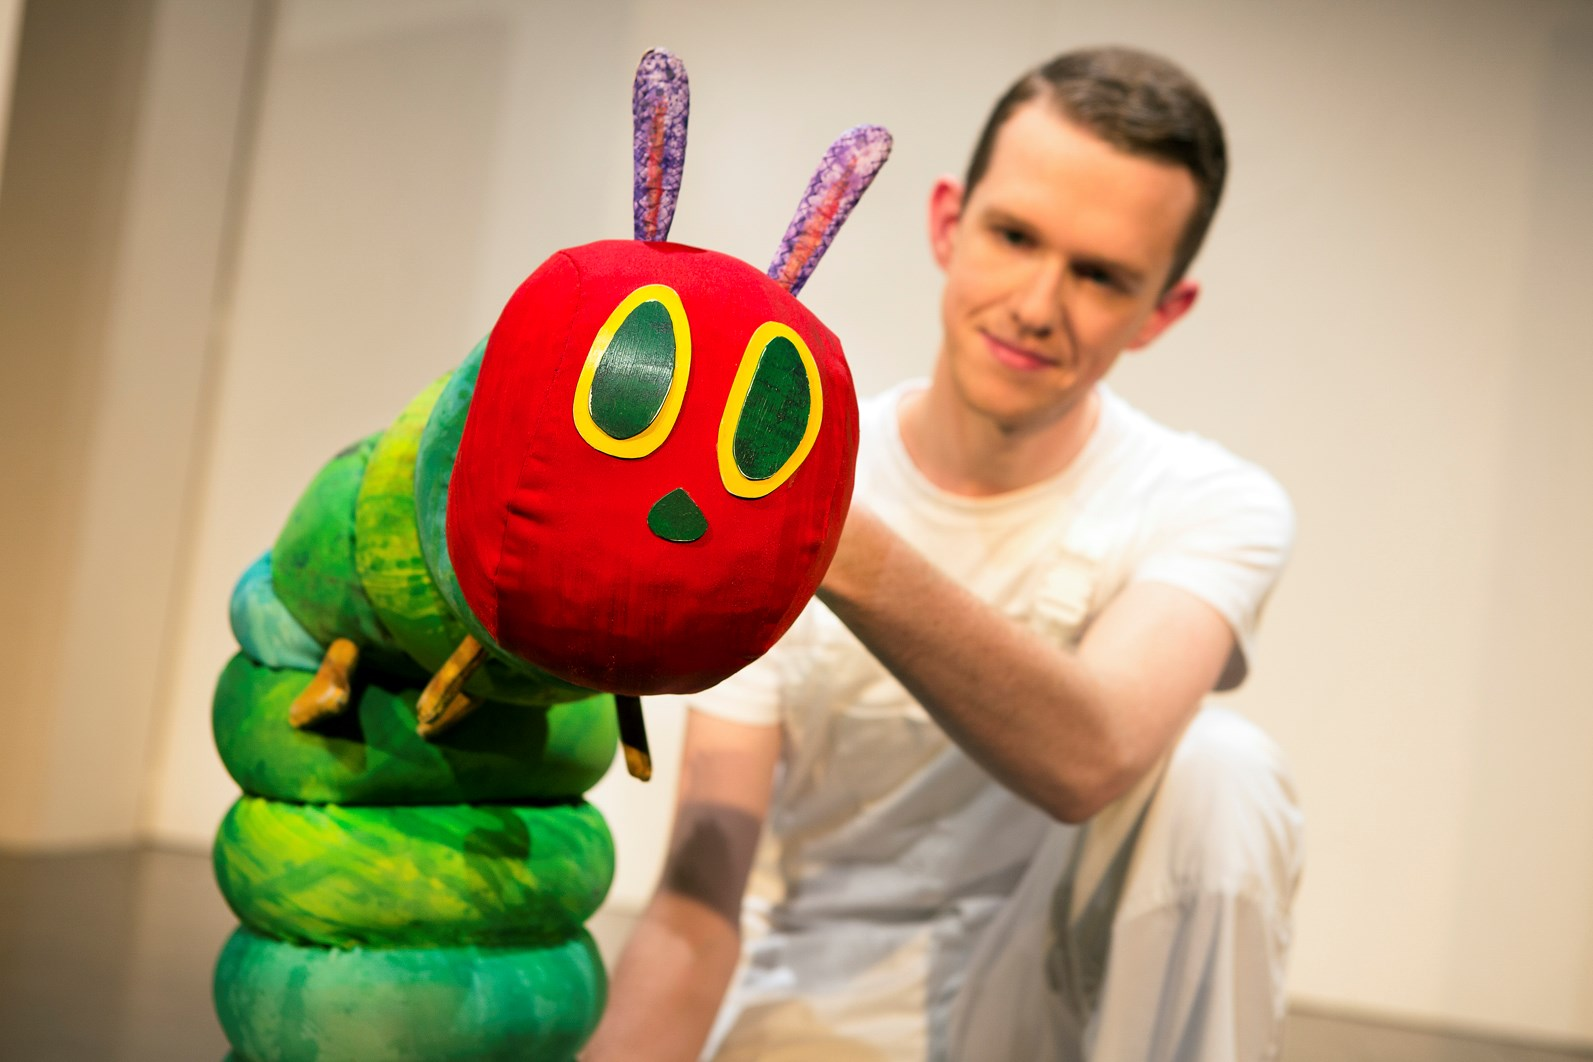 The Very Hungry Caterpillar Show wriggles into the West Midlands